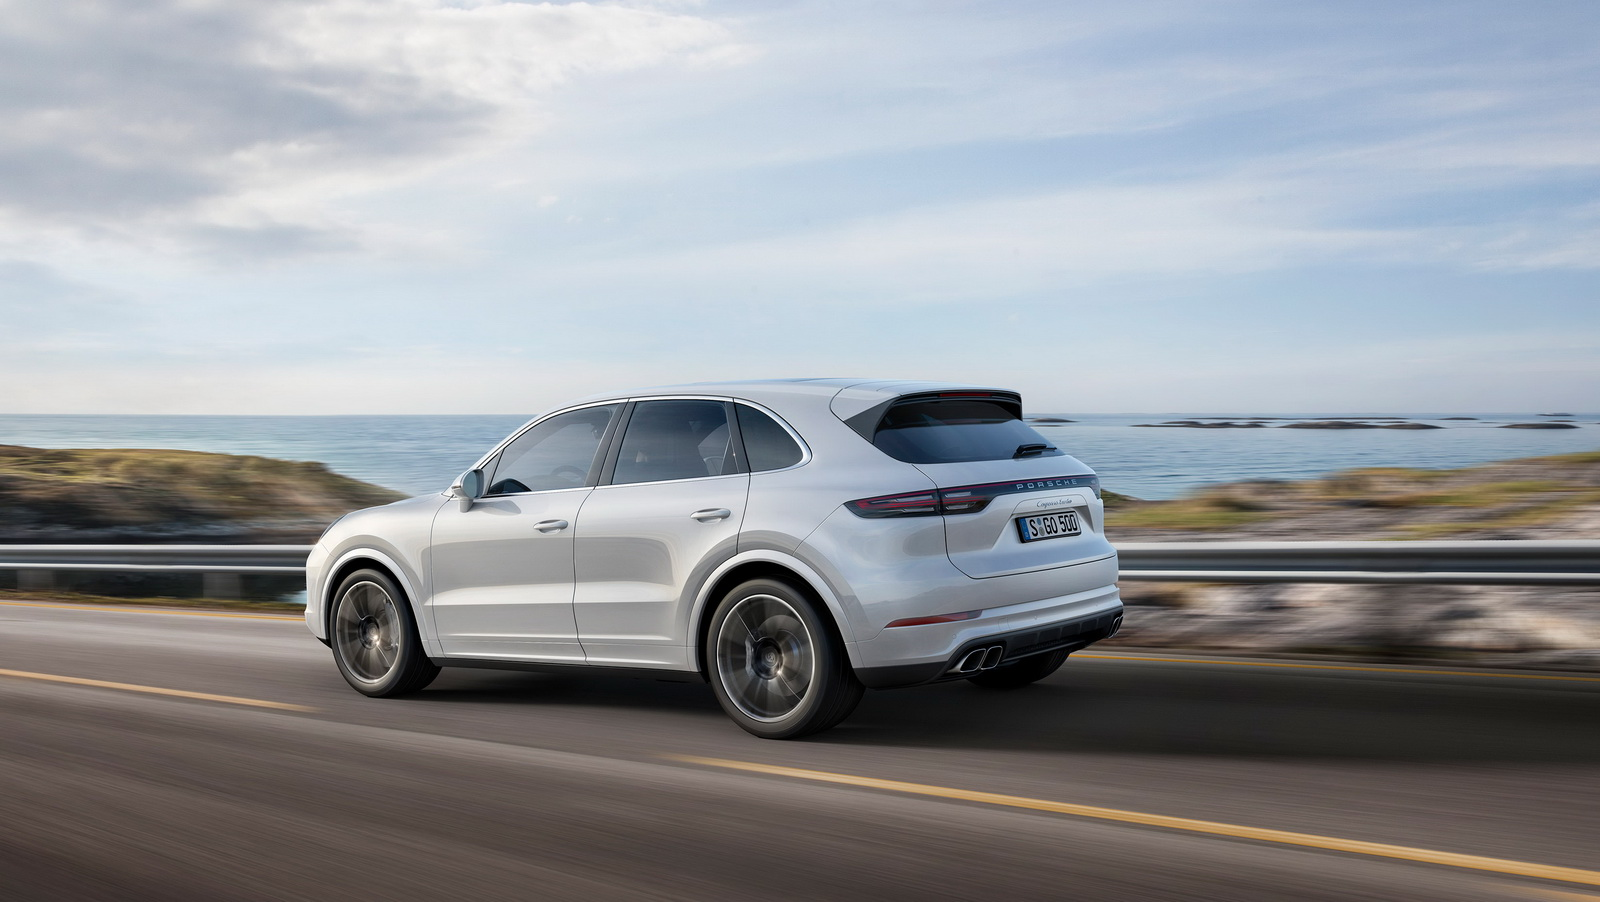 2018 porsche cayenne turbo unveiled at the 2017 frankfurt motor show. Black Bedroom Furniture Sets. Home Design Ideas